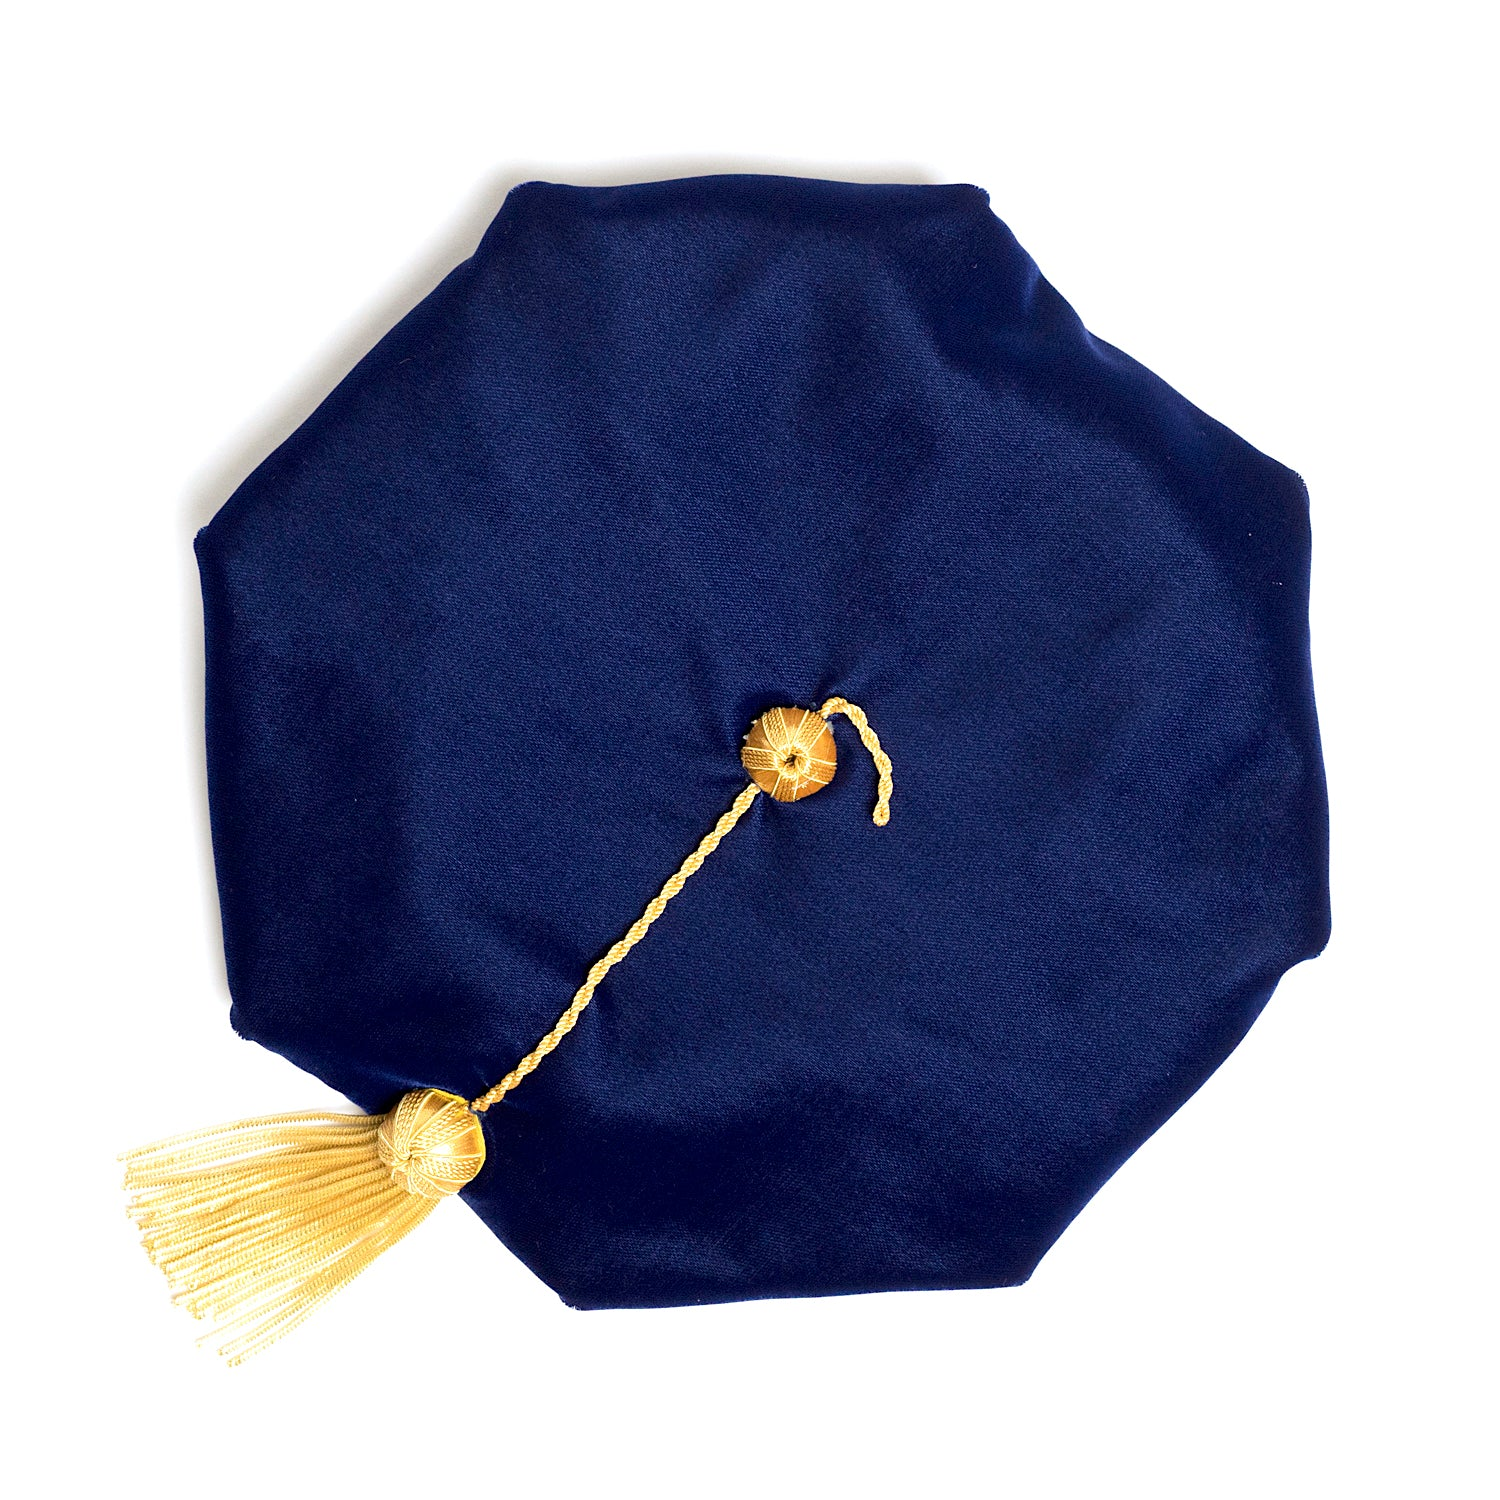 University of Pennsylvania 8-Sided Doctoral Tam (Cap) with Gold Tassel